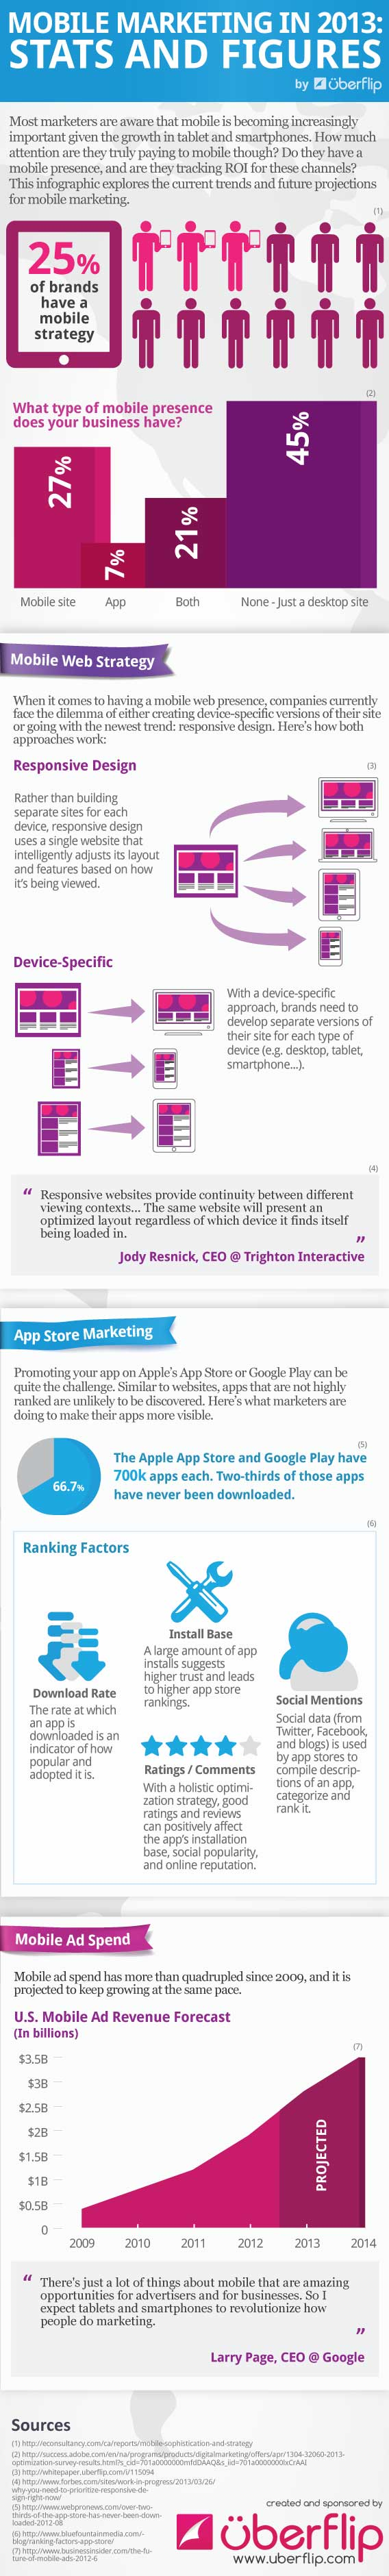 mobile-marketing-infographic